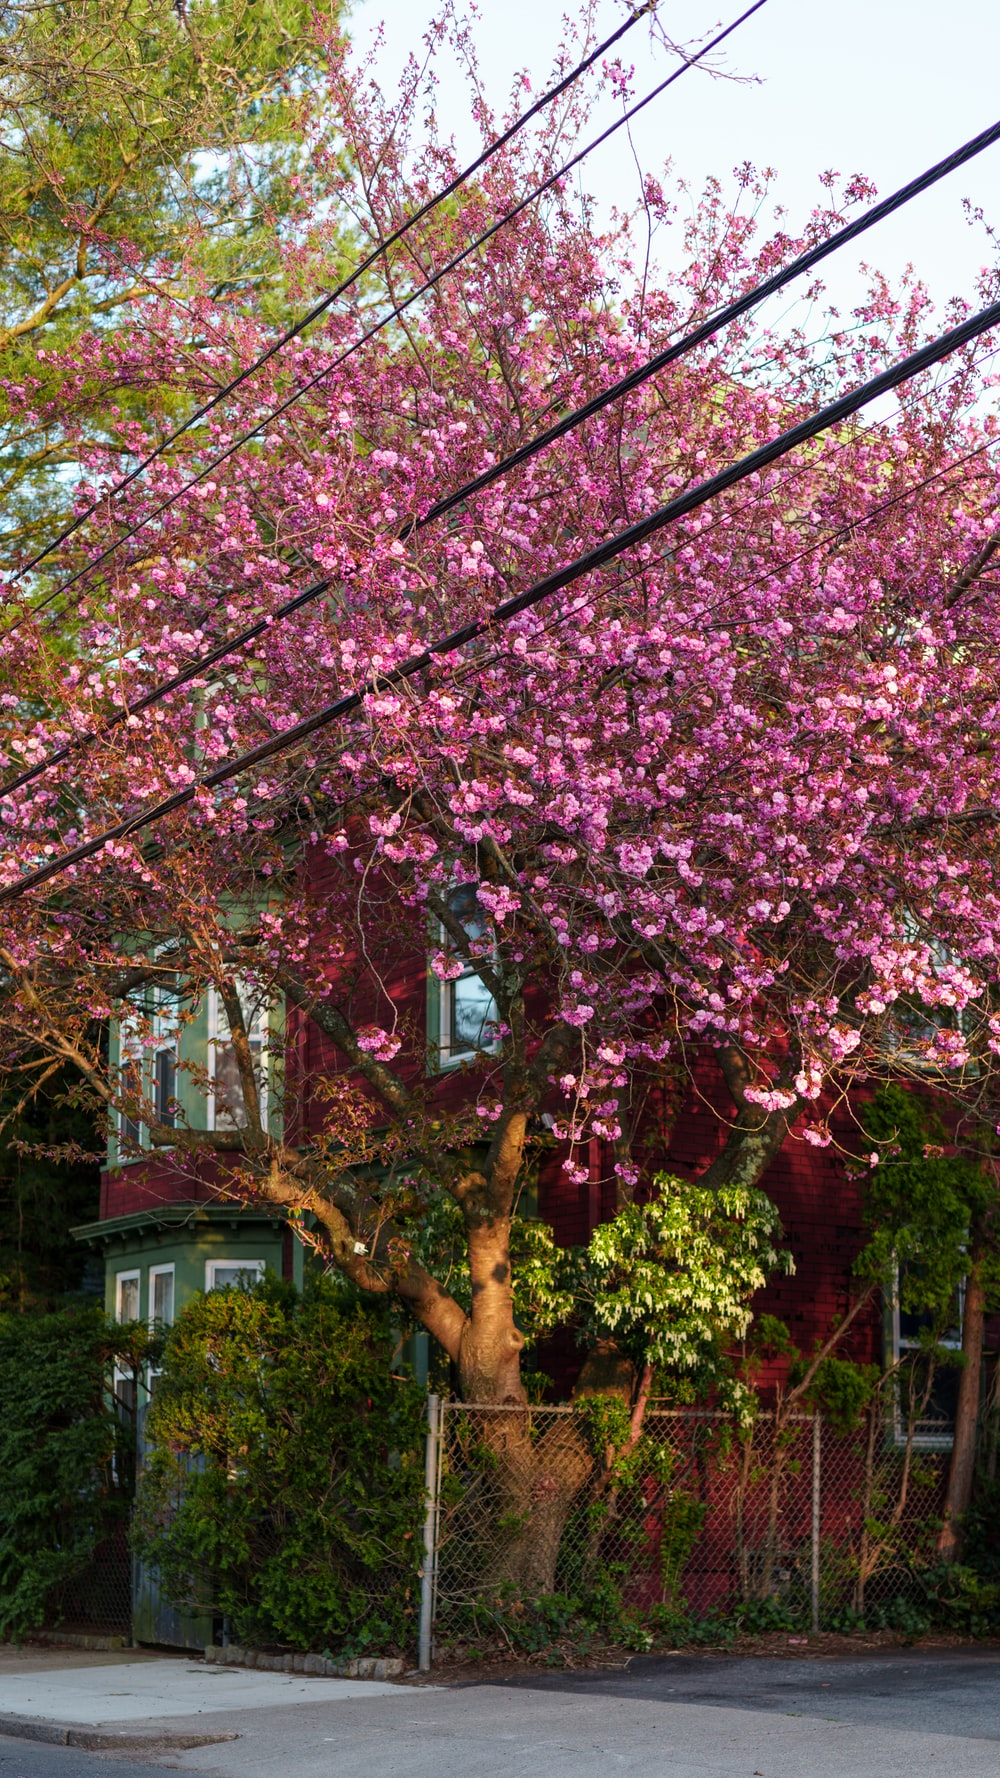 pink cherry blossom tree near white house during daytime